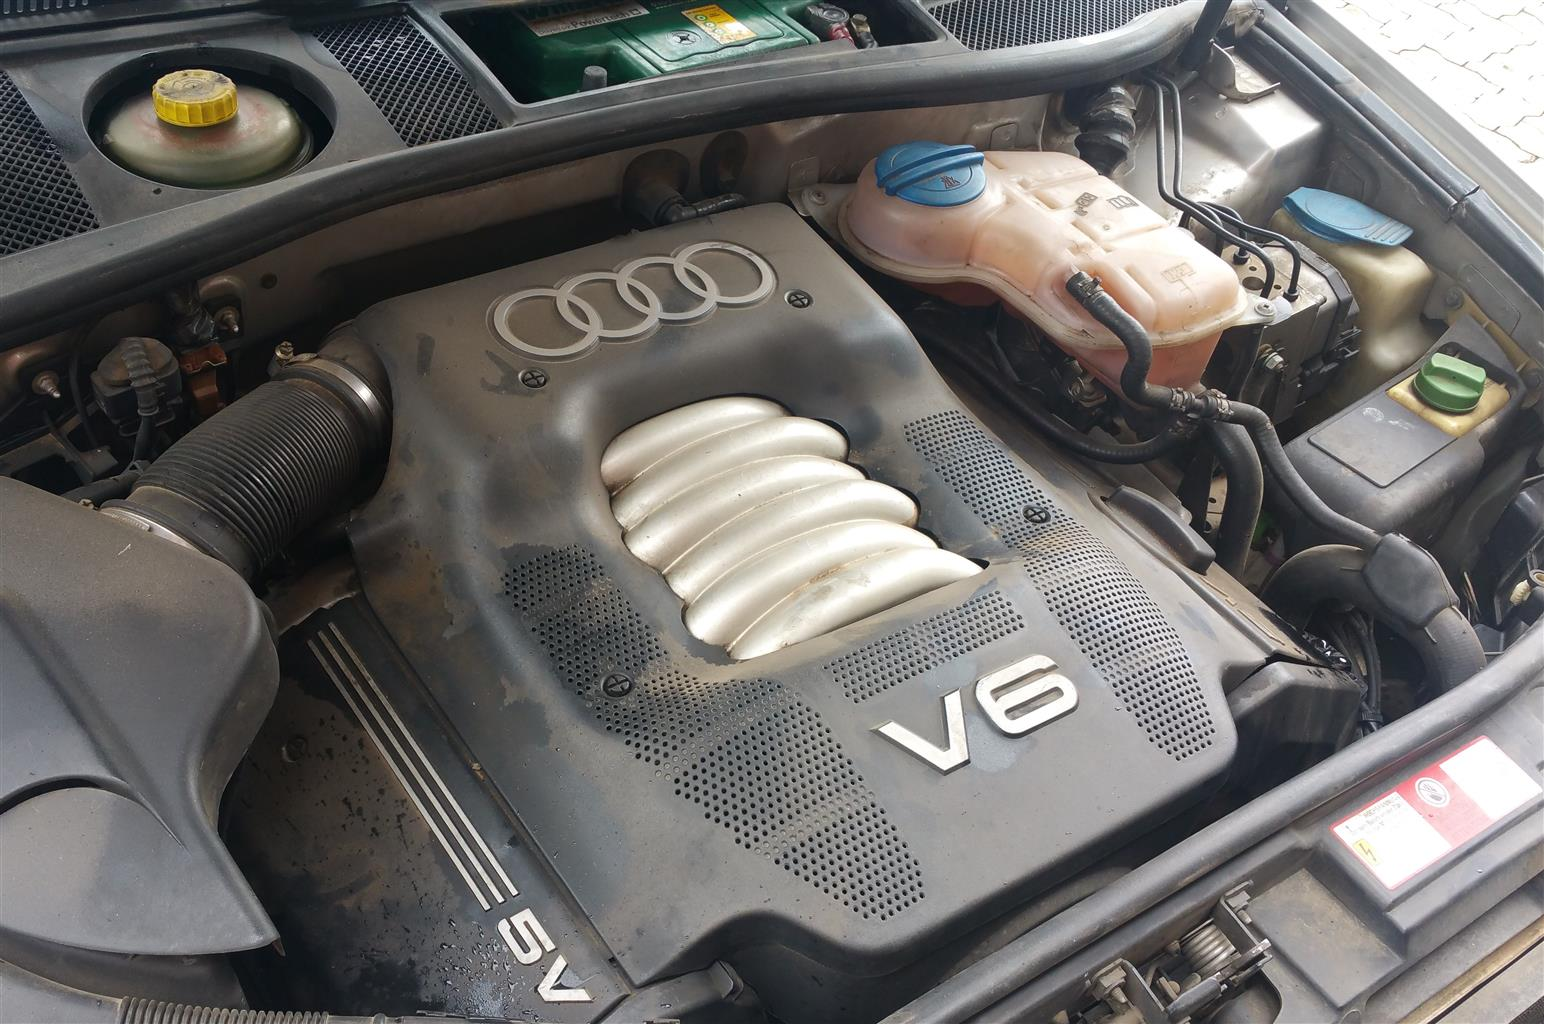 Audi A6 24v6 Engine Mountings Junk Mail